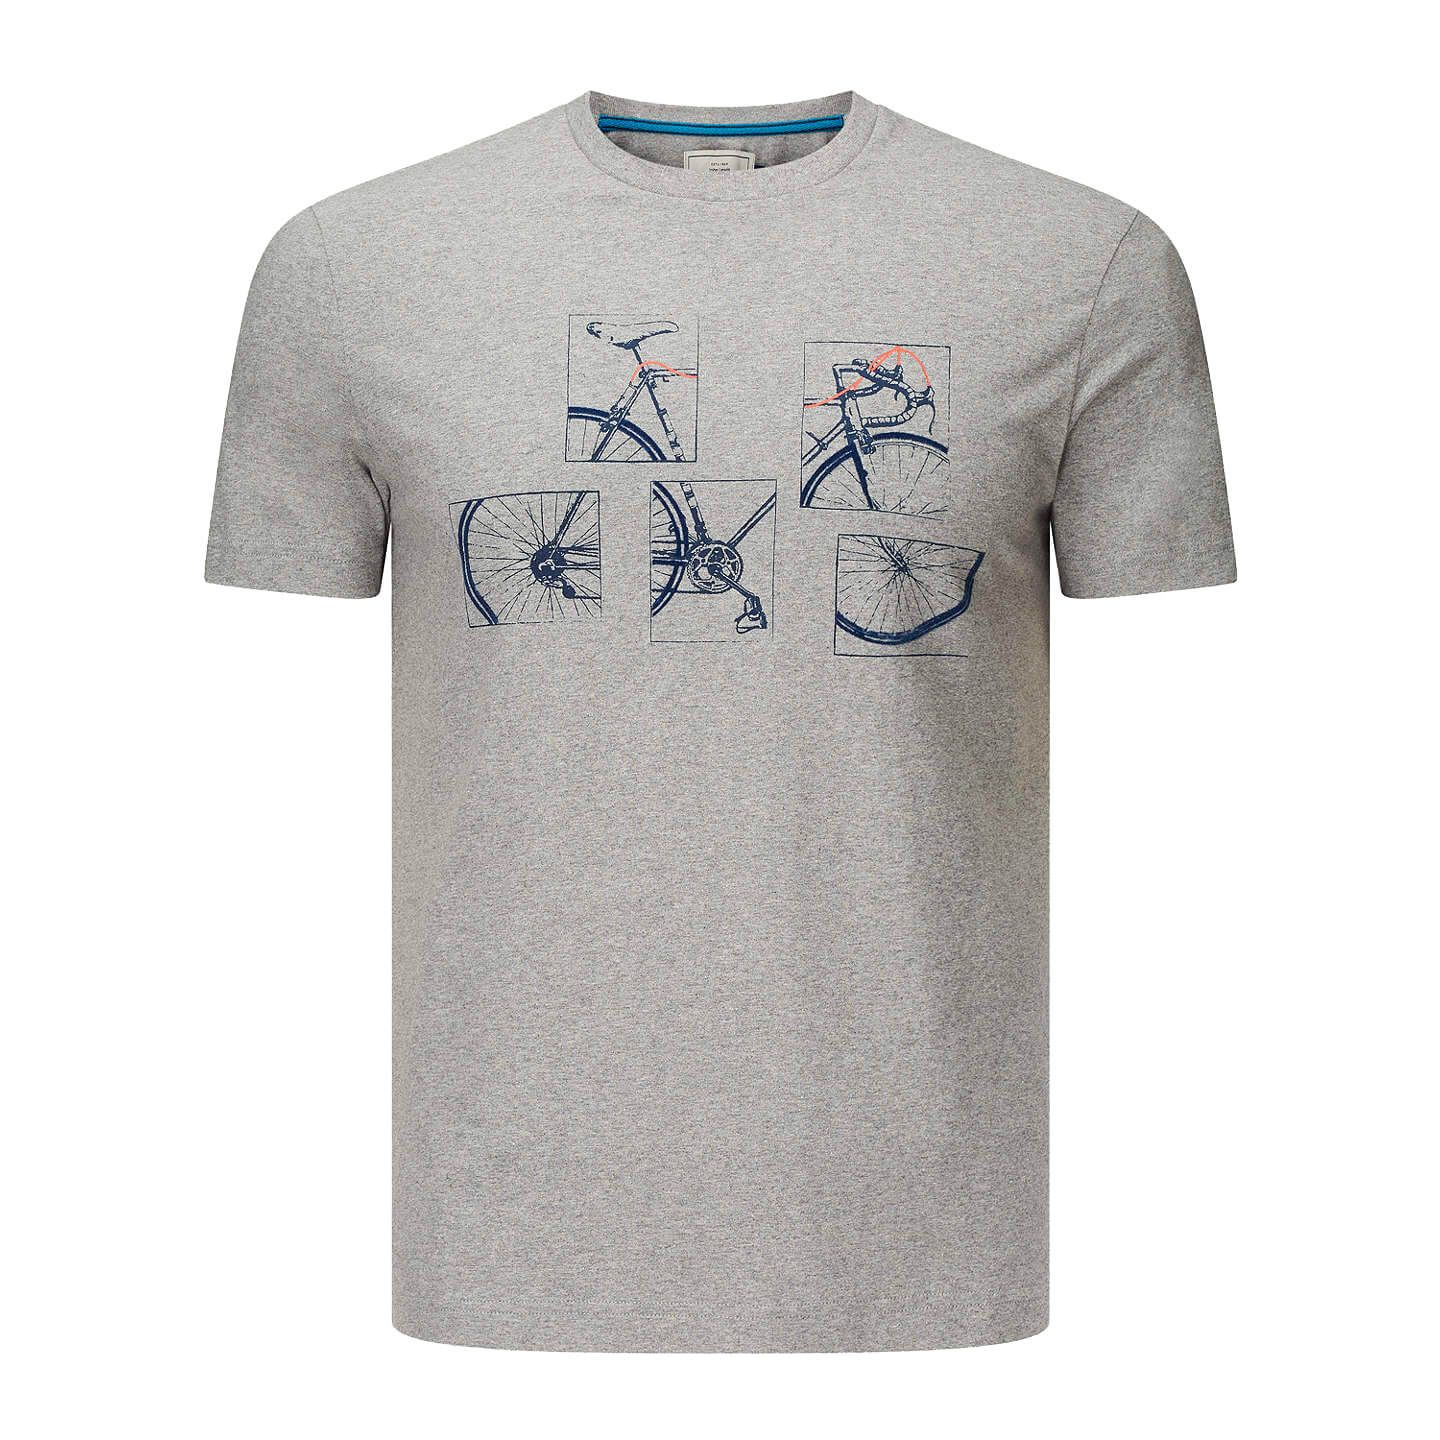 John Lewis Bike Placement Graphic T Shirt Grey